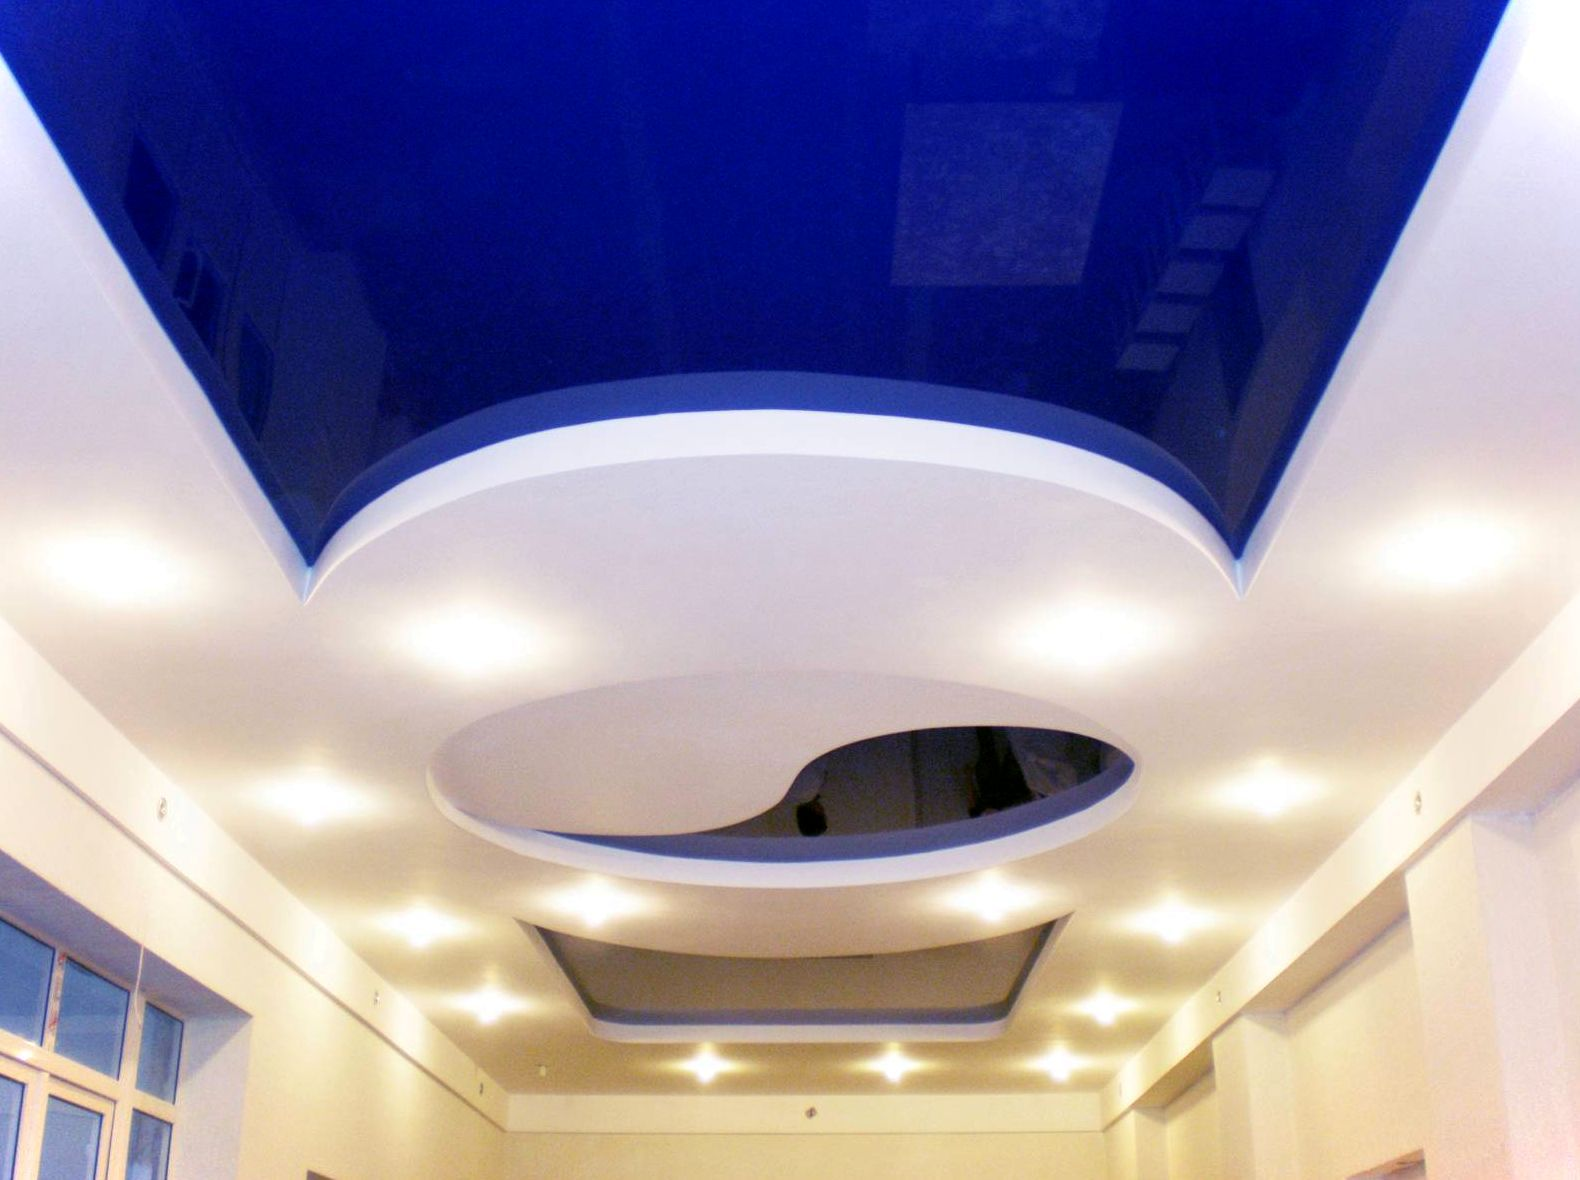 Bedroom Ceiling Design | Bedroom Kitchen | DigInTheScene-Ceilings ...